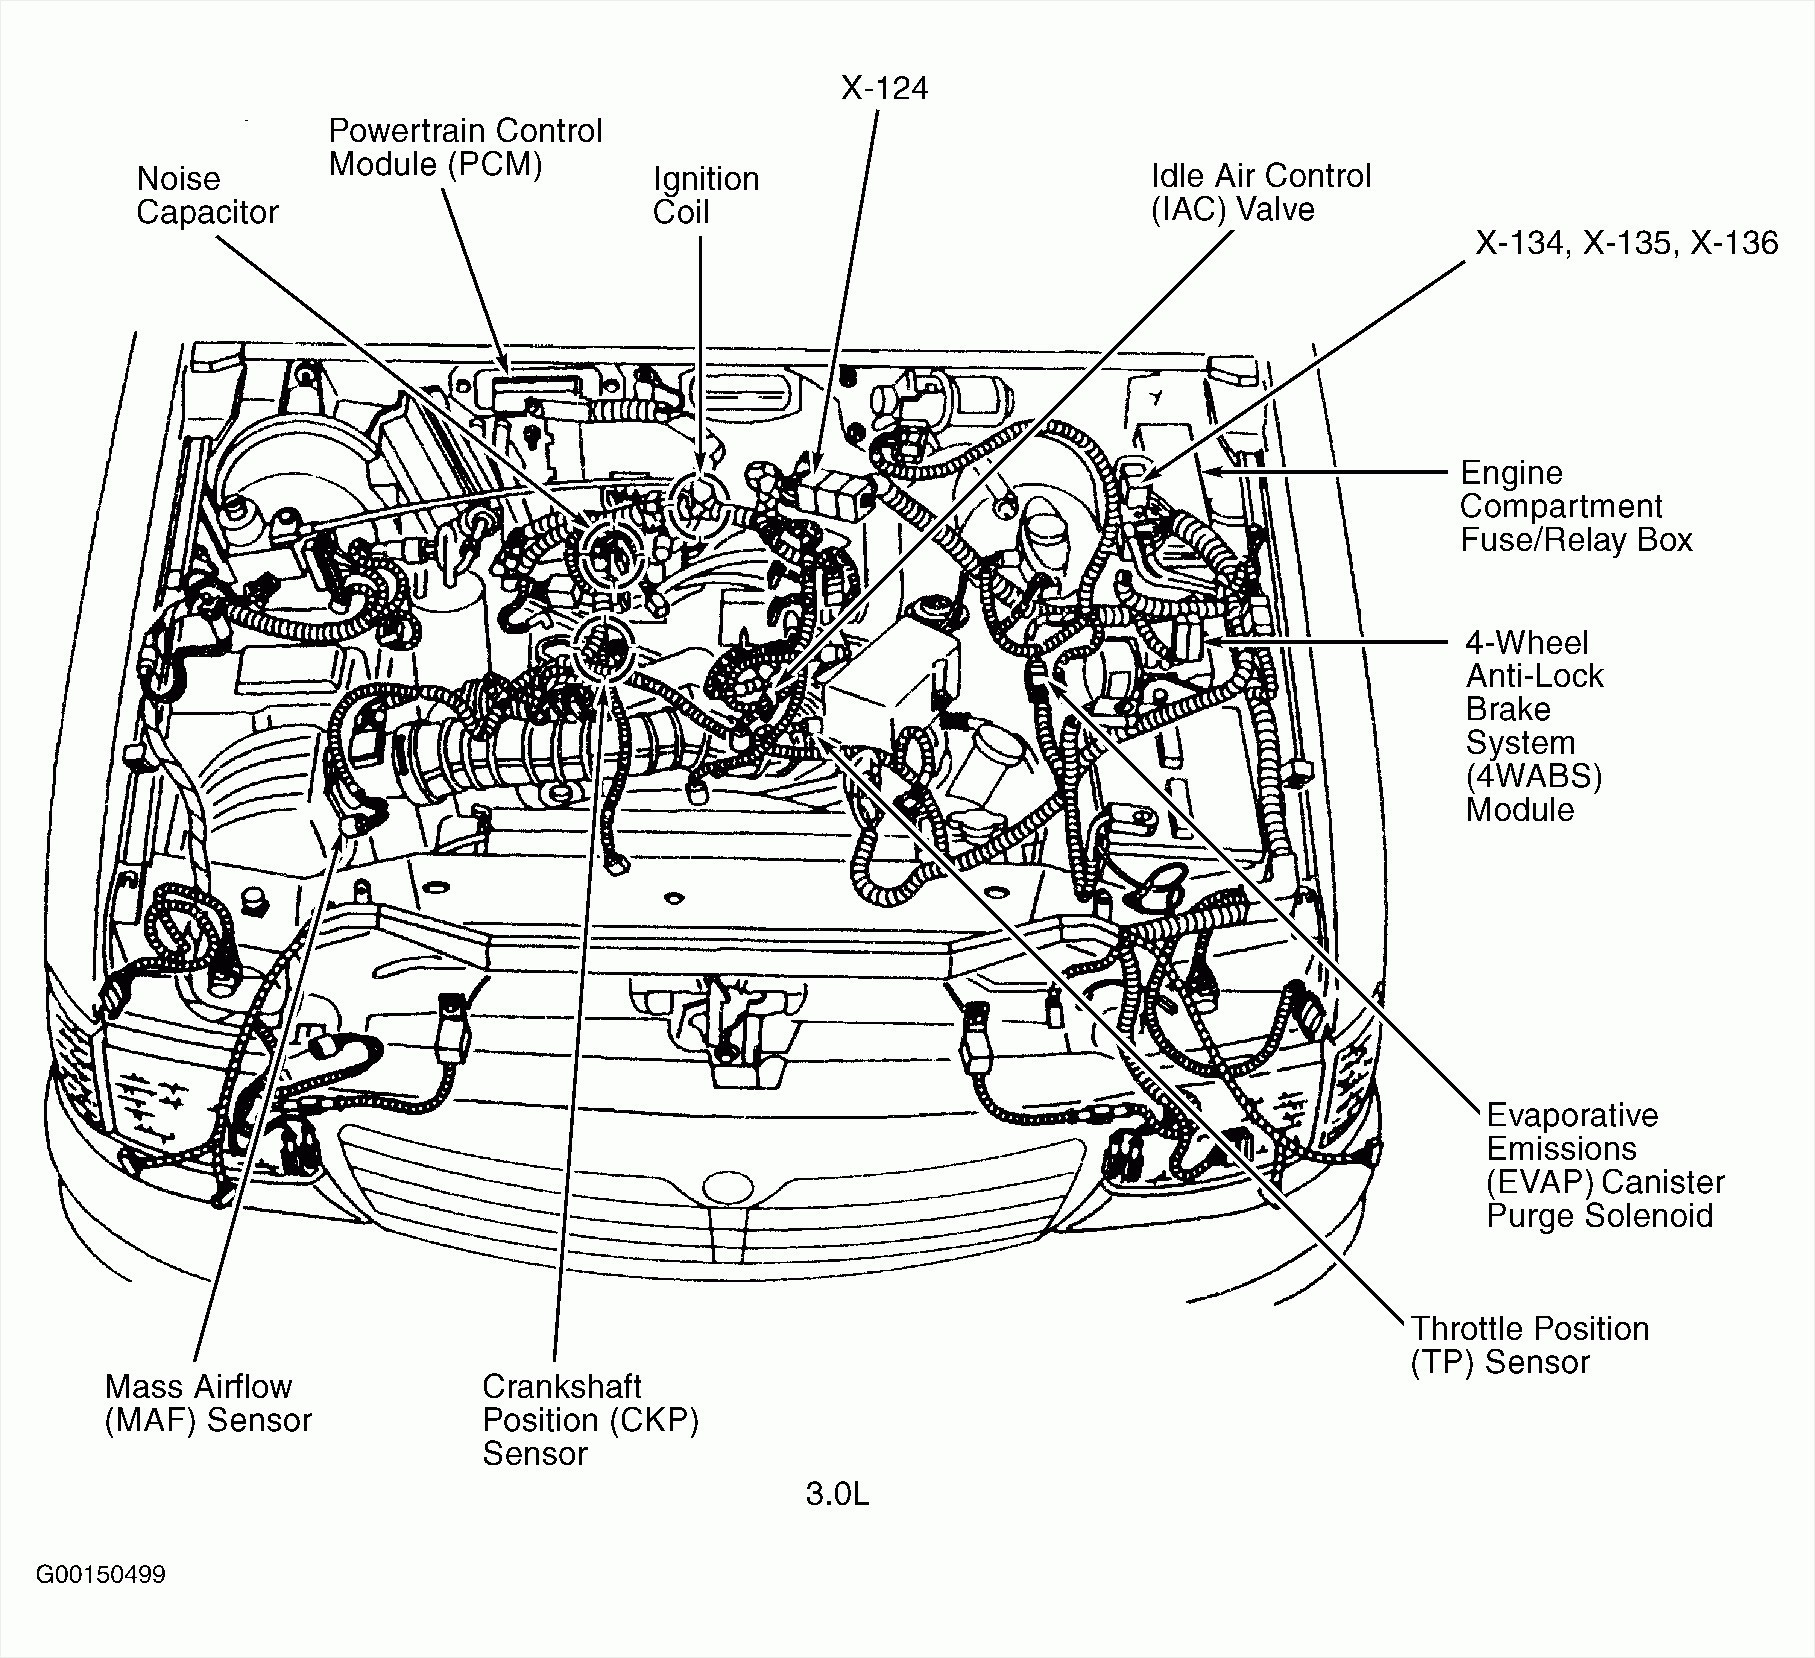 hight resolution of 2000 mercury cougar engine diagram car tuning 12 2 nuerasolar co u2022mazda protege engine diagram